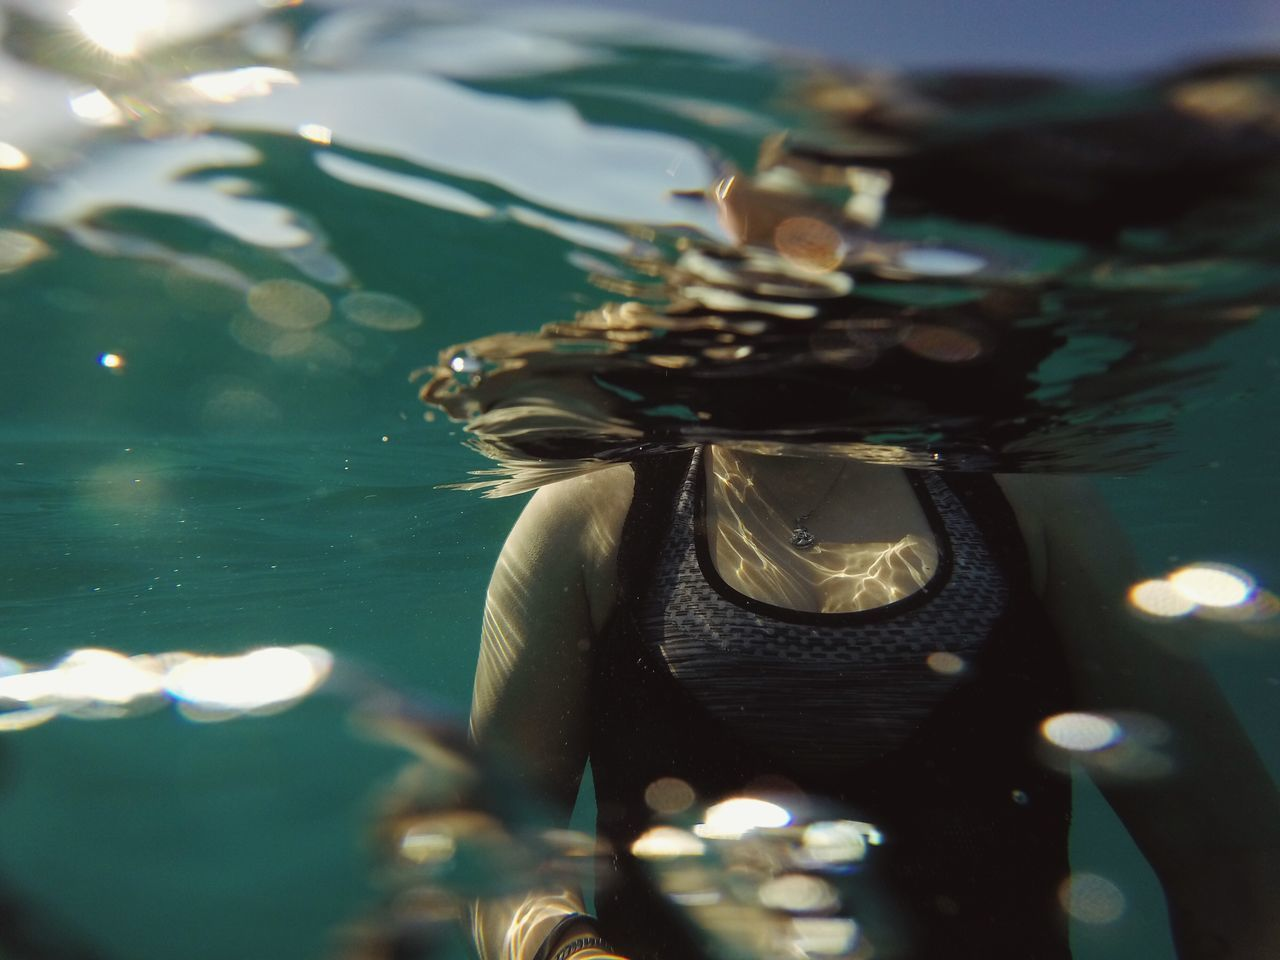 Beautiful stock photos of underwater, water, animals in the wild, one animal, close-up